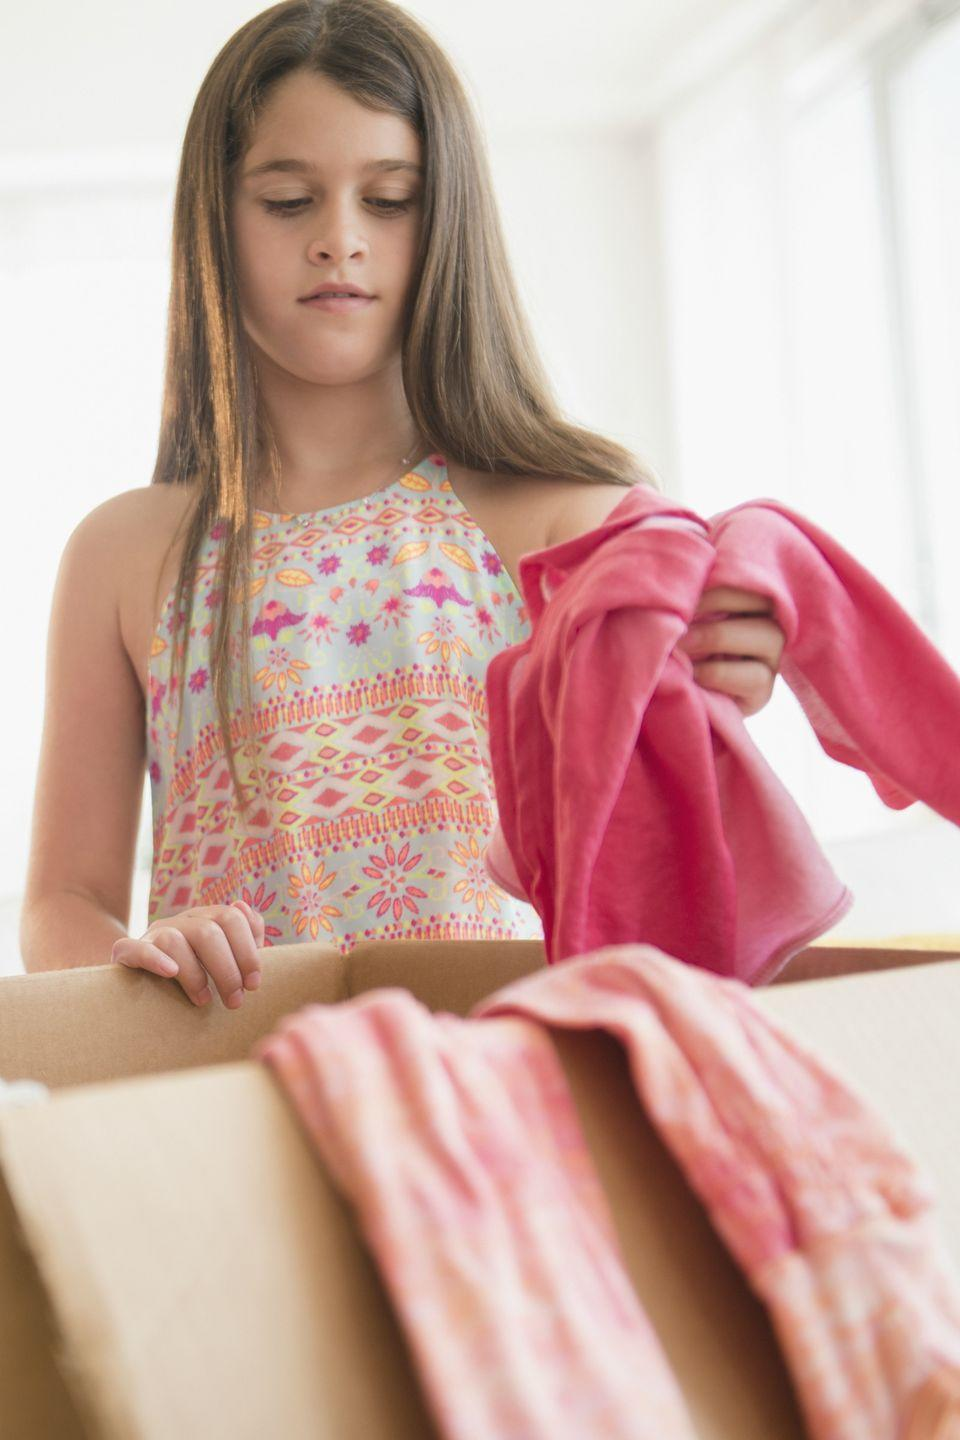 """<p>When switching between kids' summer and winter <span class=""""itxtrst itxtrsta itxthook"""">clothes</span>, mark boxes with the date and sizes so you don't have to paw through them to know if they'll fit. </p><p><strong><a class=""""link rapid-noclick-resp"""" href=""""https://www.amazon.com/Onlyeasy-Foldable-Storage-Bins-Lids/dp/B07GCQRXPR/?tag=syn-yahoo-20&ascsubtag=%5Bartid%7C10070.g.3310%5Bsrc%7Cyahoo-us"""" rel=""""nofollow noopener"""" target=""""_blank"""" data-ylk=""""slk:SHOP STORAGE BINS"""">SHOP STORAGE BINS</a></strong></p>"""